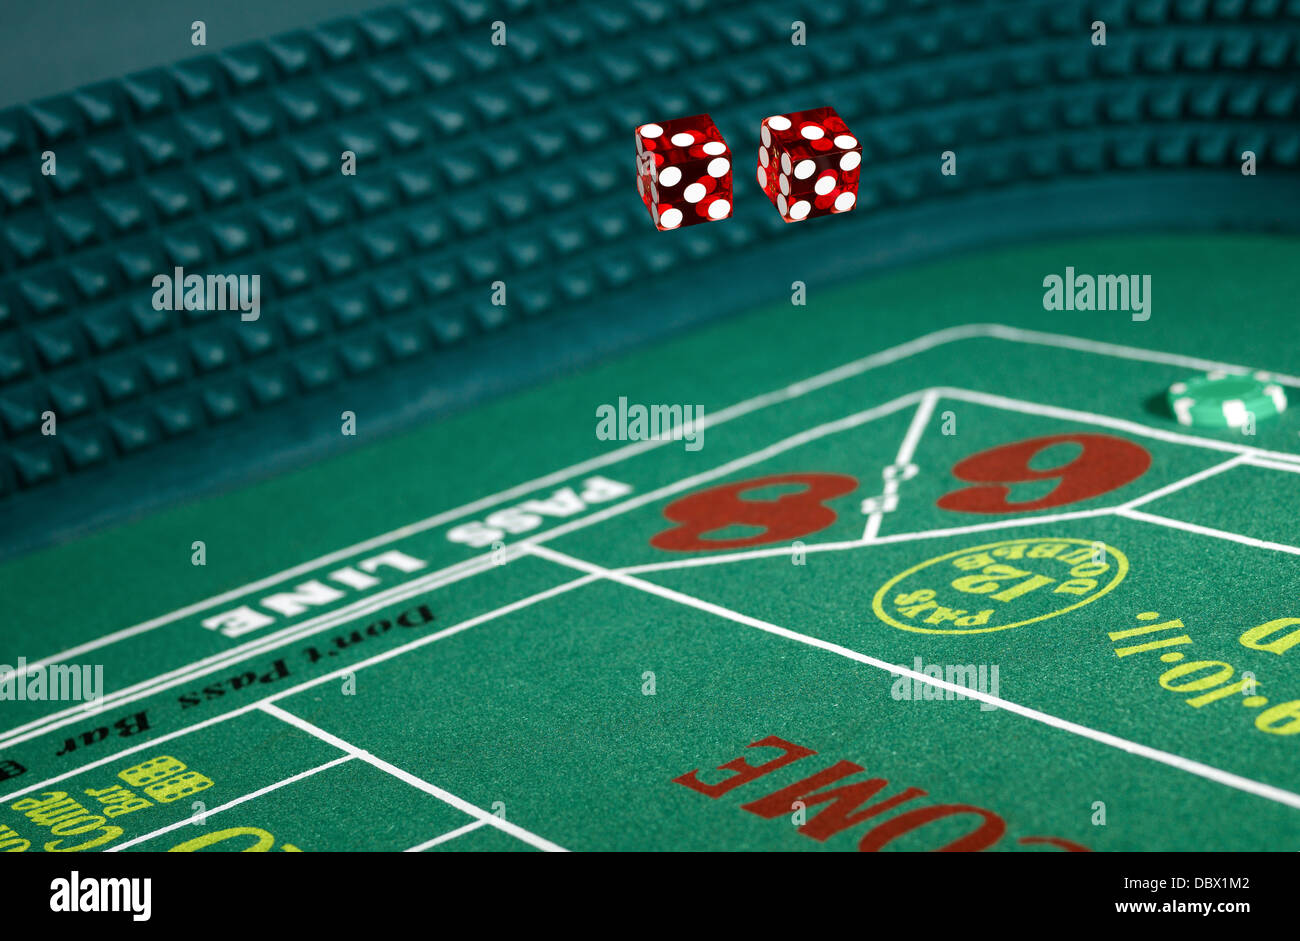 Casino game craps - Stock Image